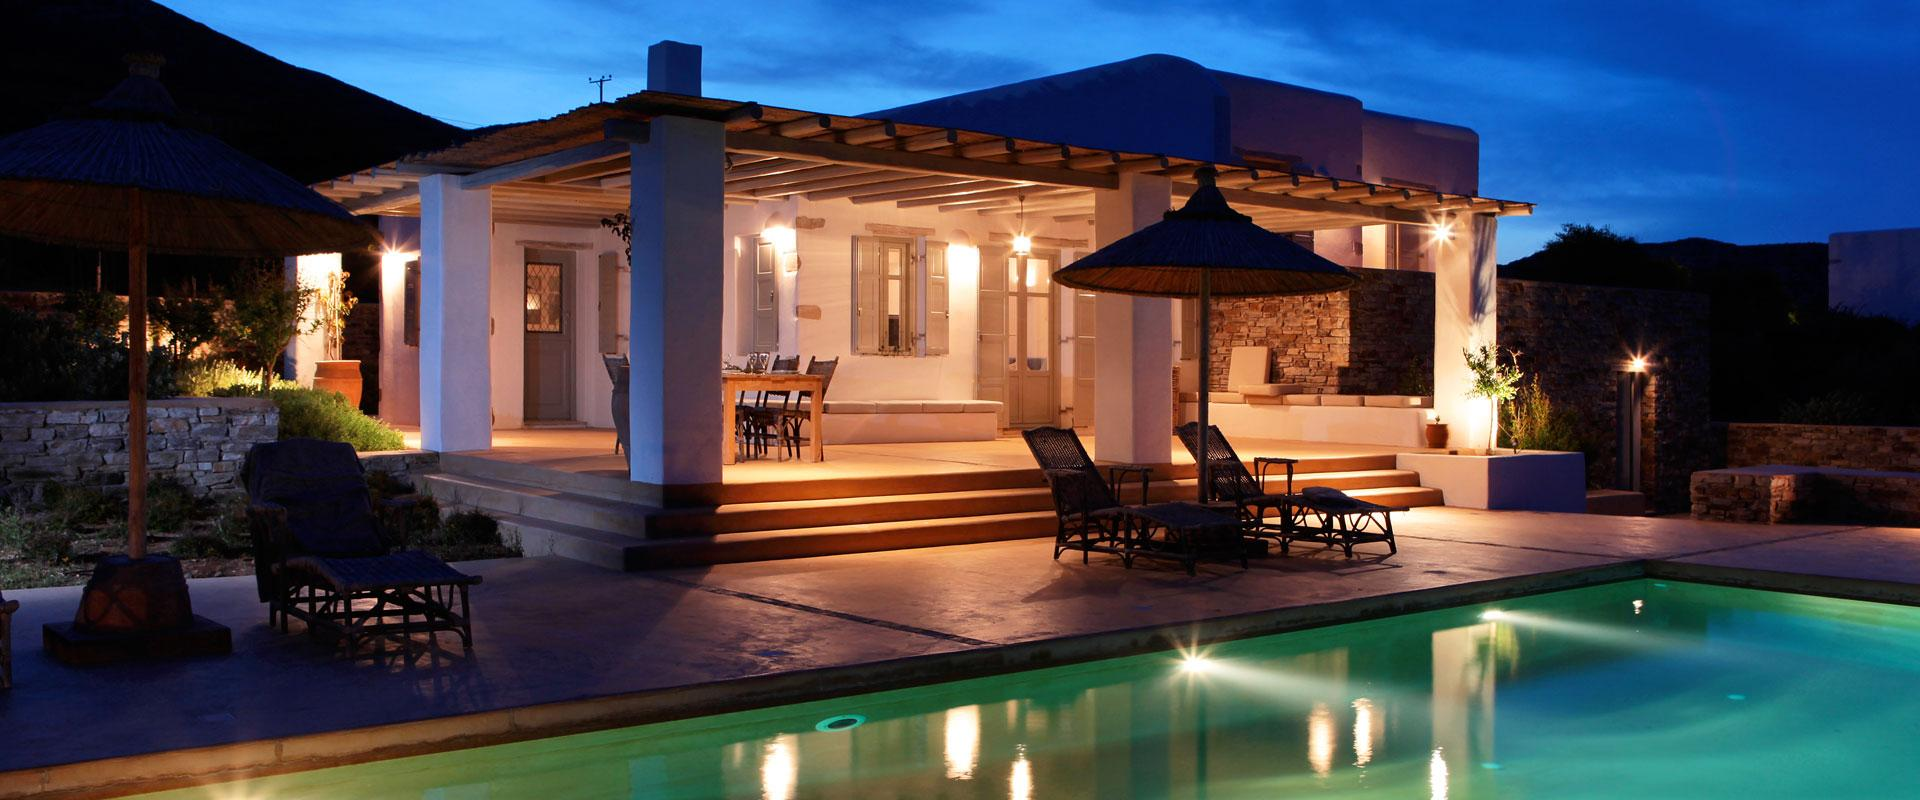 10 luxury villas in Goa to rent out instead of those posh hotels!